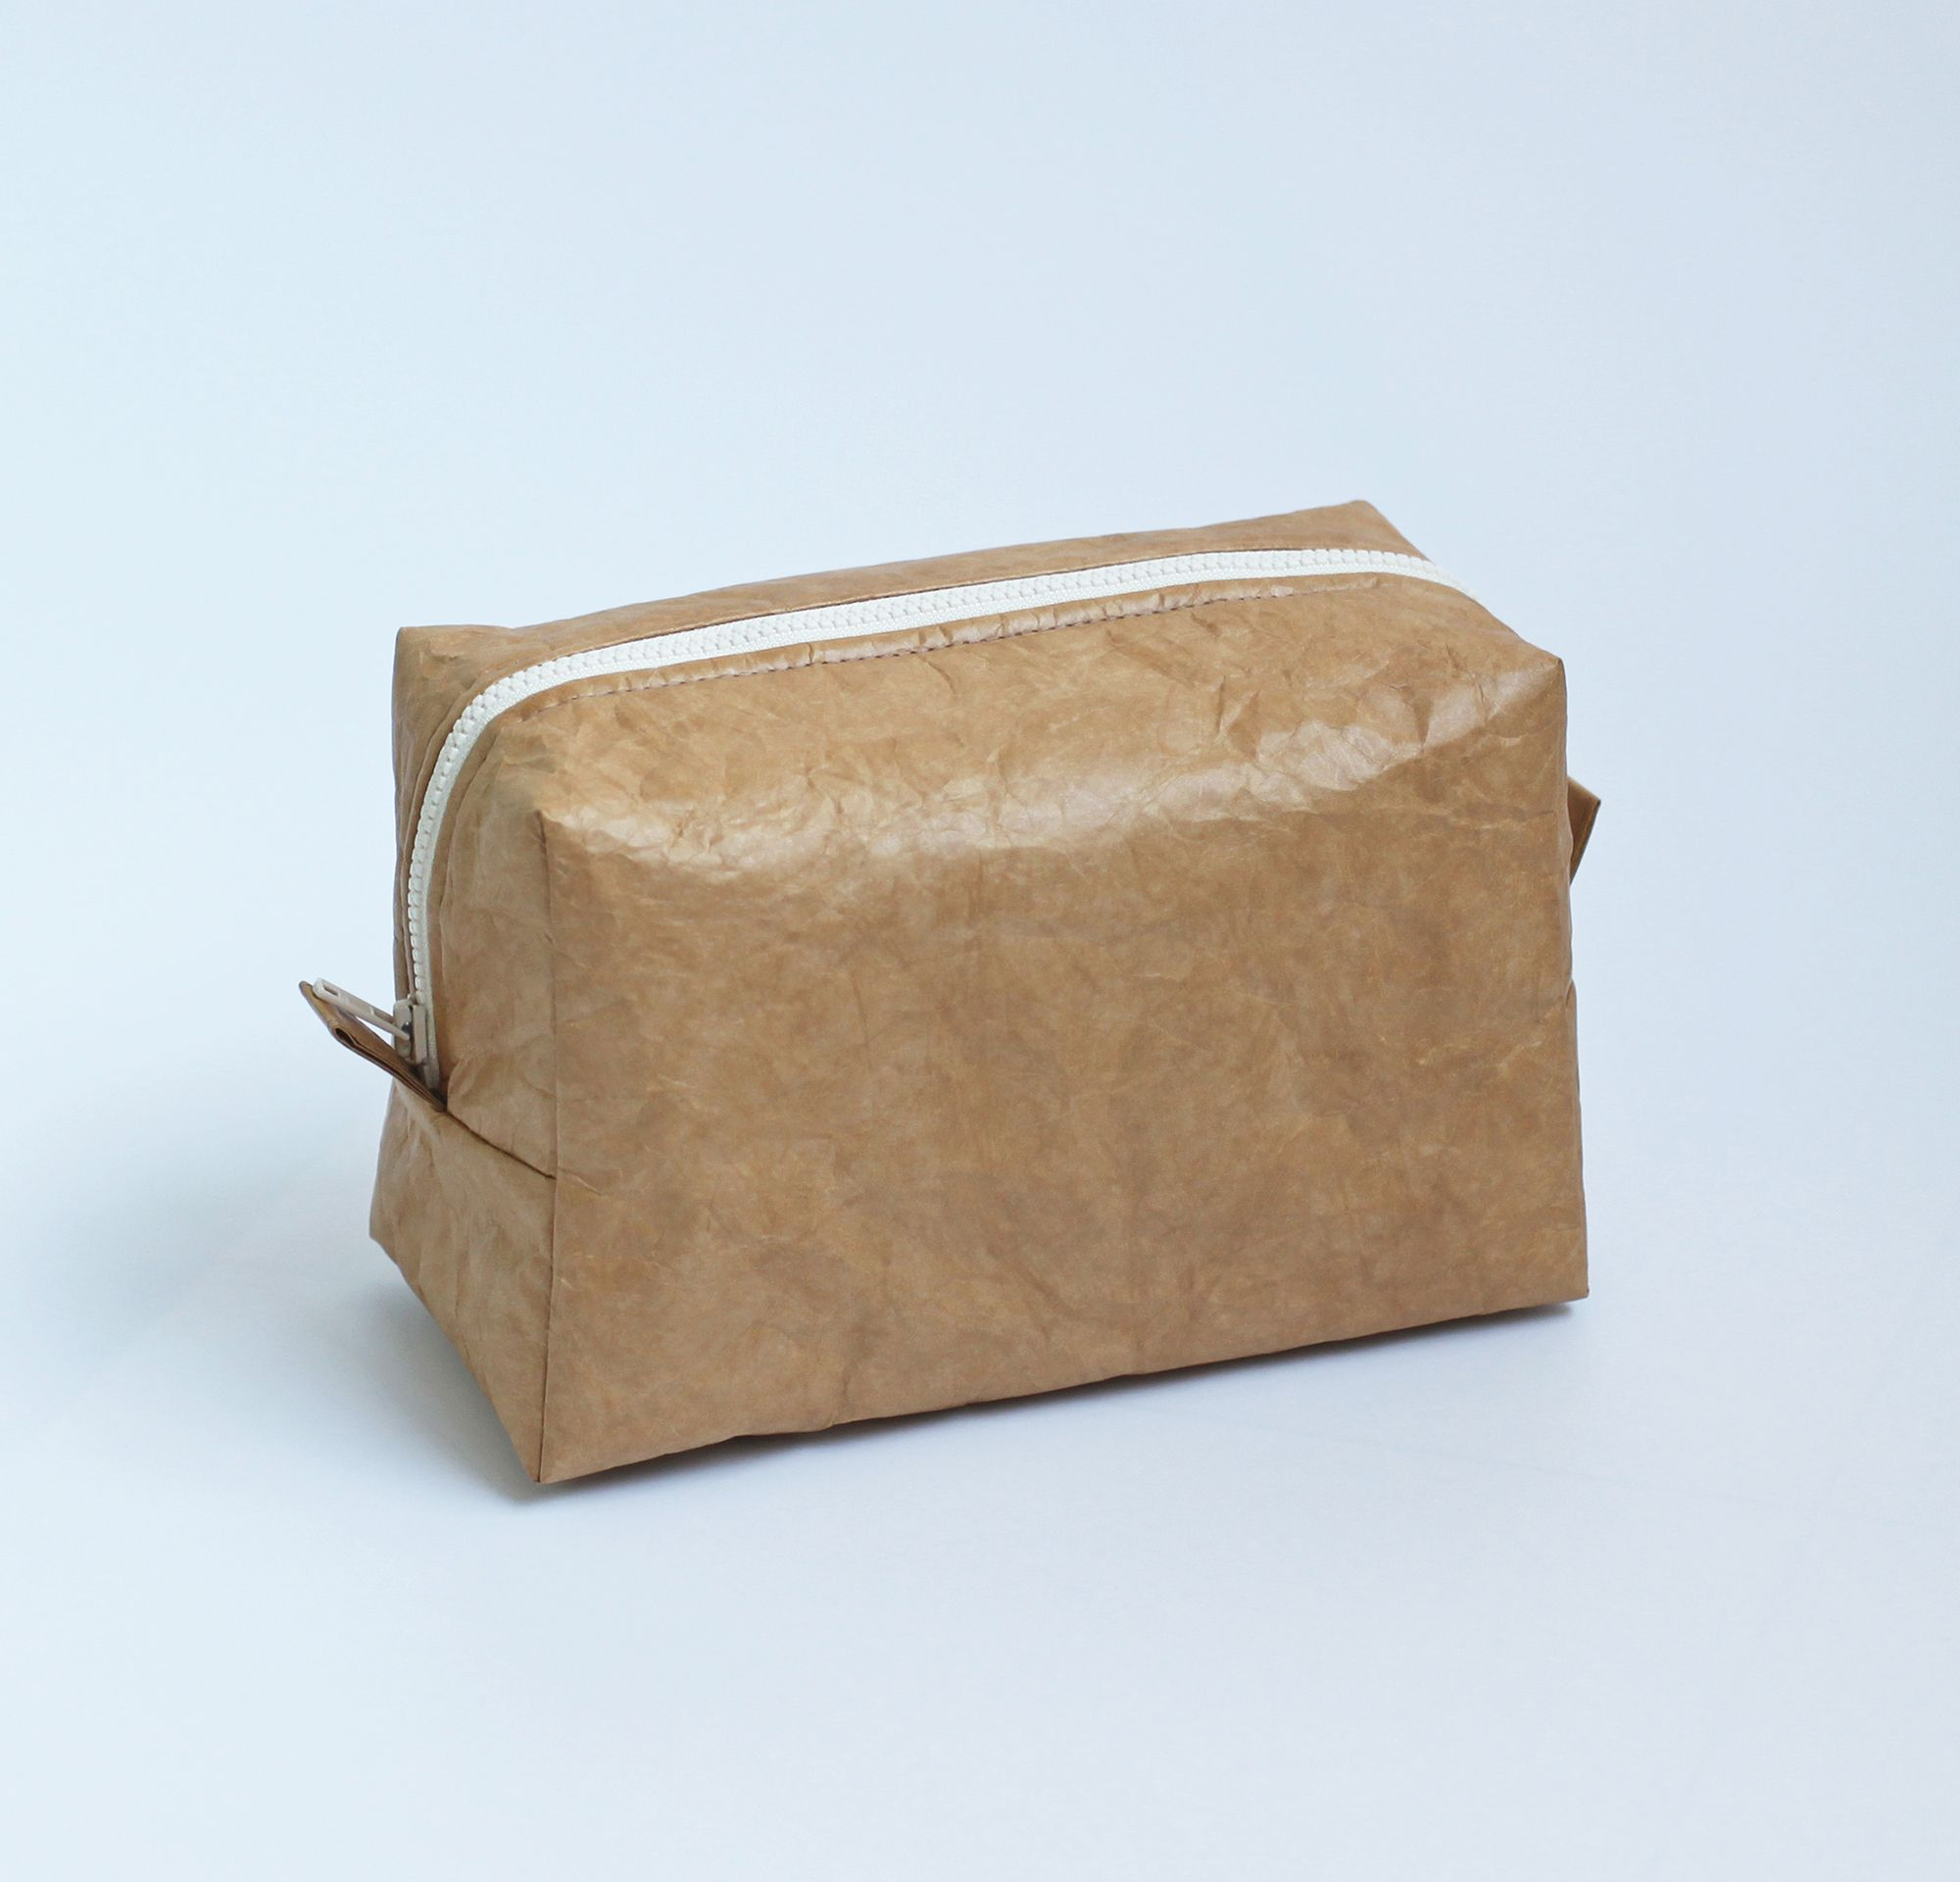 ea9ef3dc12f Minimalist Tyvek Paper Cosmetic   Toiletry Bag   My Bags and Purses ...